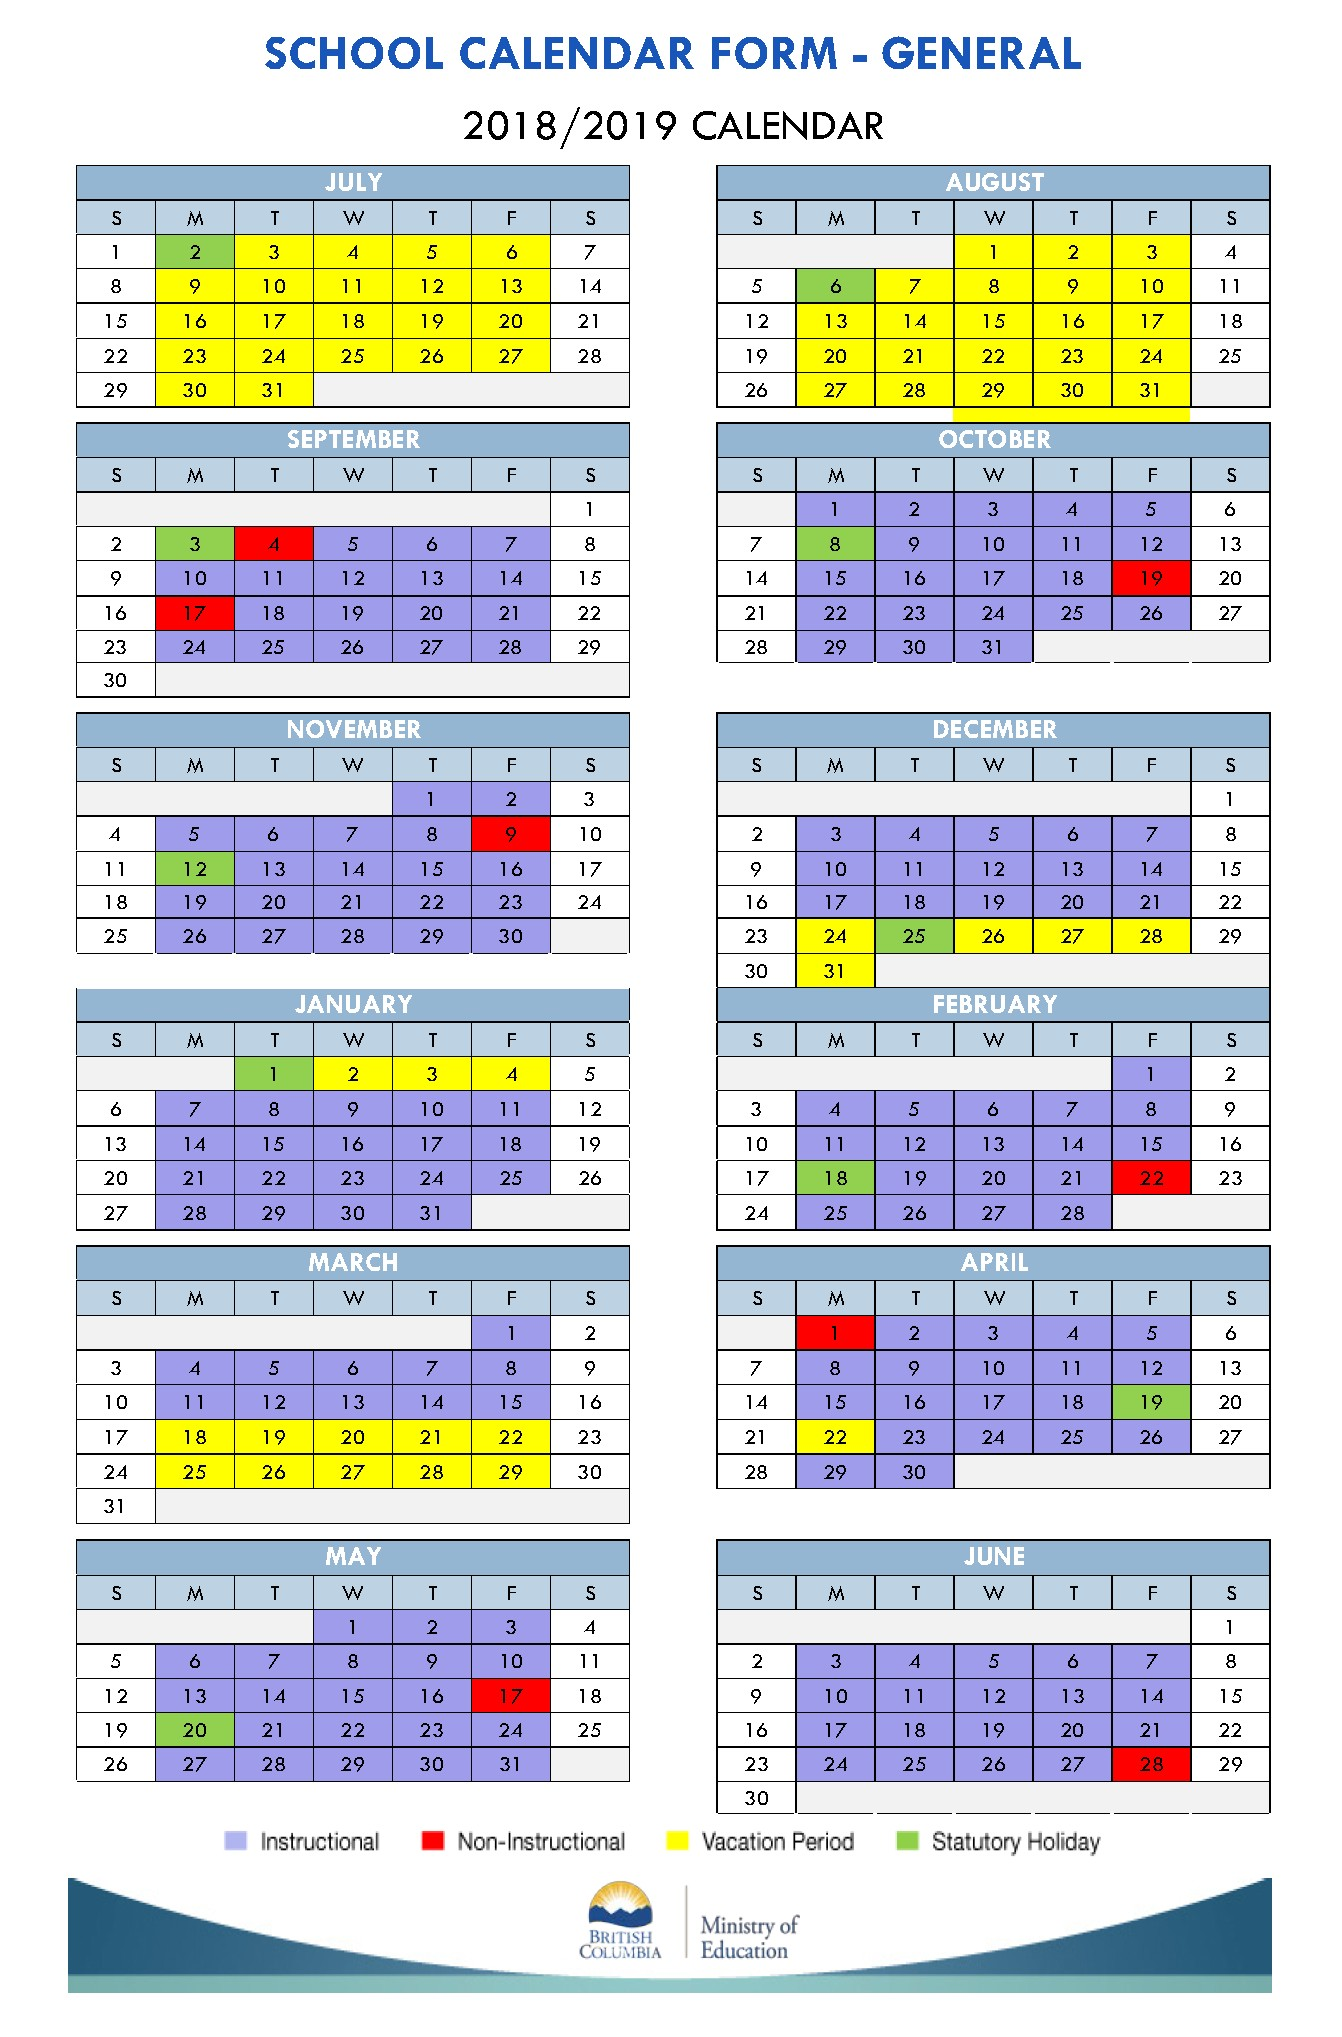 DistrictCalendar2018 2019 Amended Page 1 2018 2019 revised School Calendar